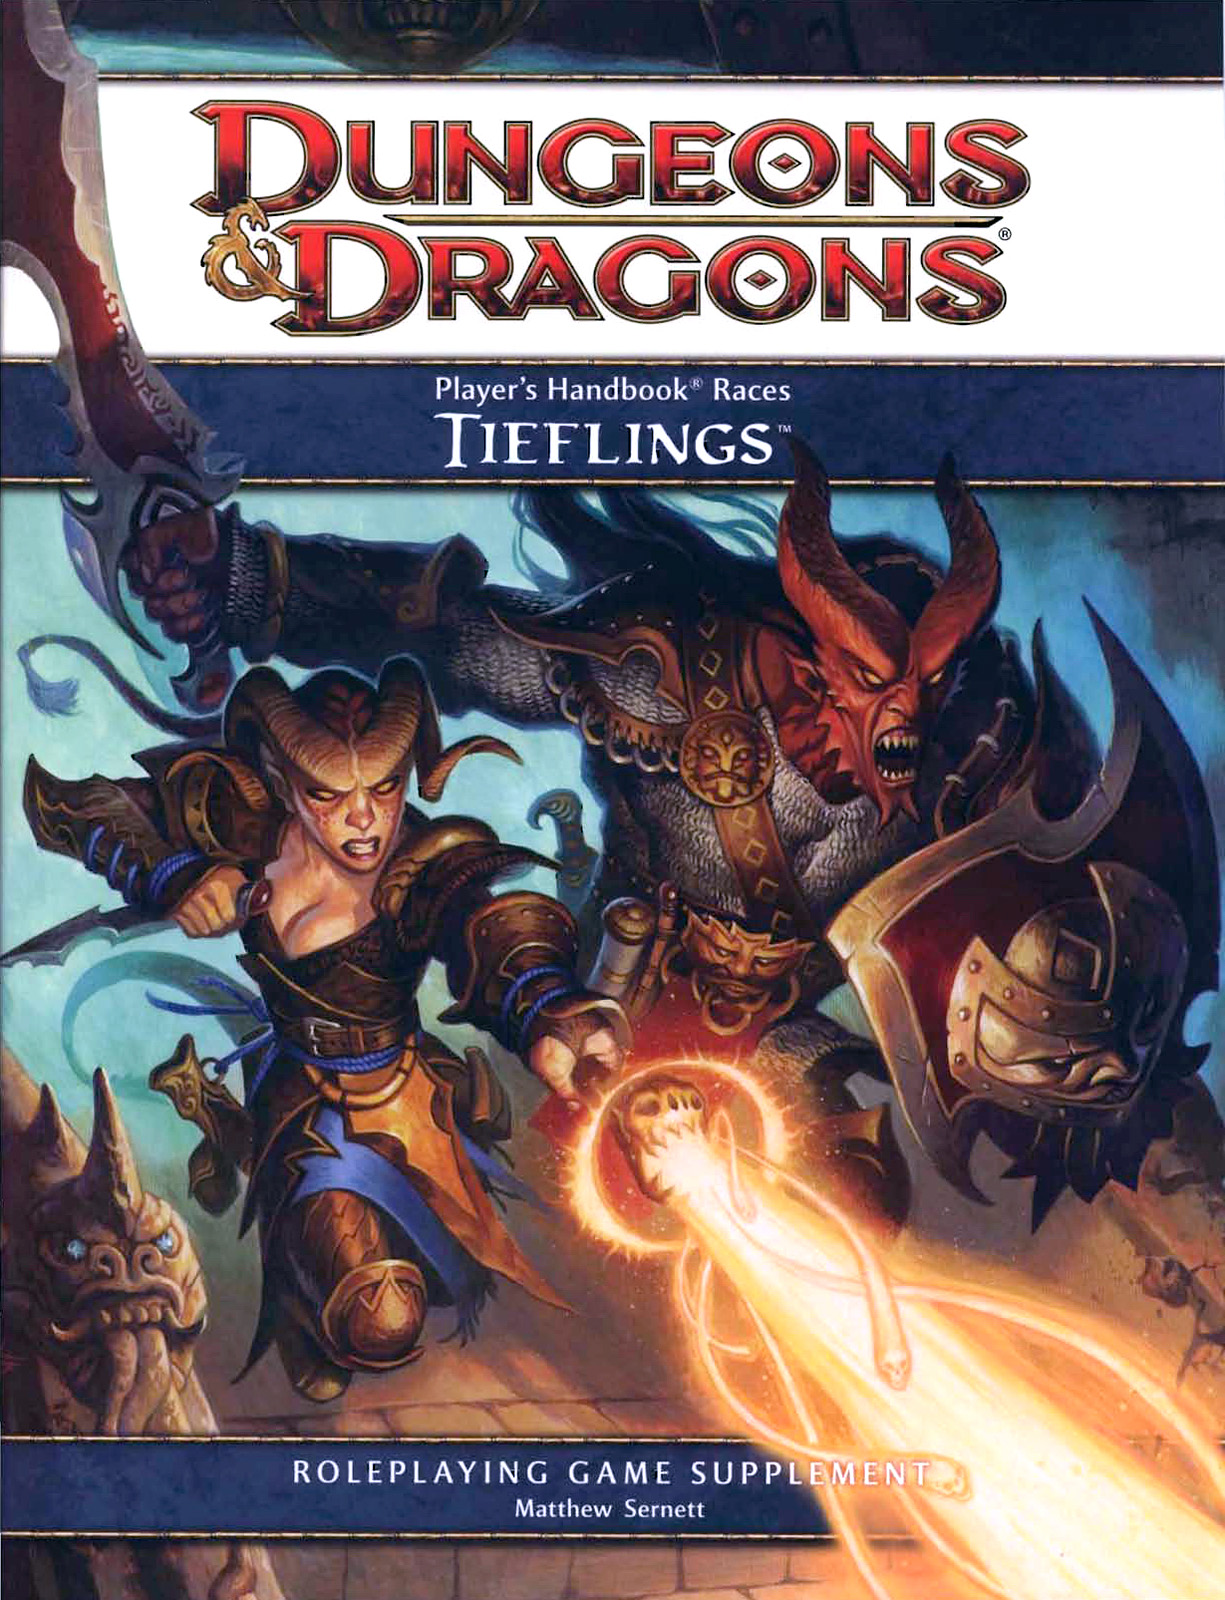 {$tags} Tiefling protagonisti, in copertina - by Steve Prescott Player's Handbook Races, Tieflings (2010-06) © Wizards of the Coast & Hasbro